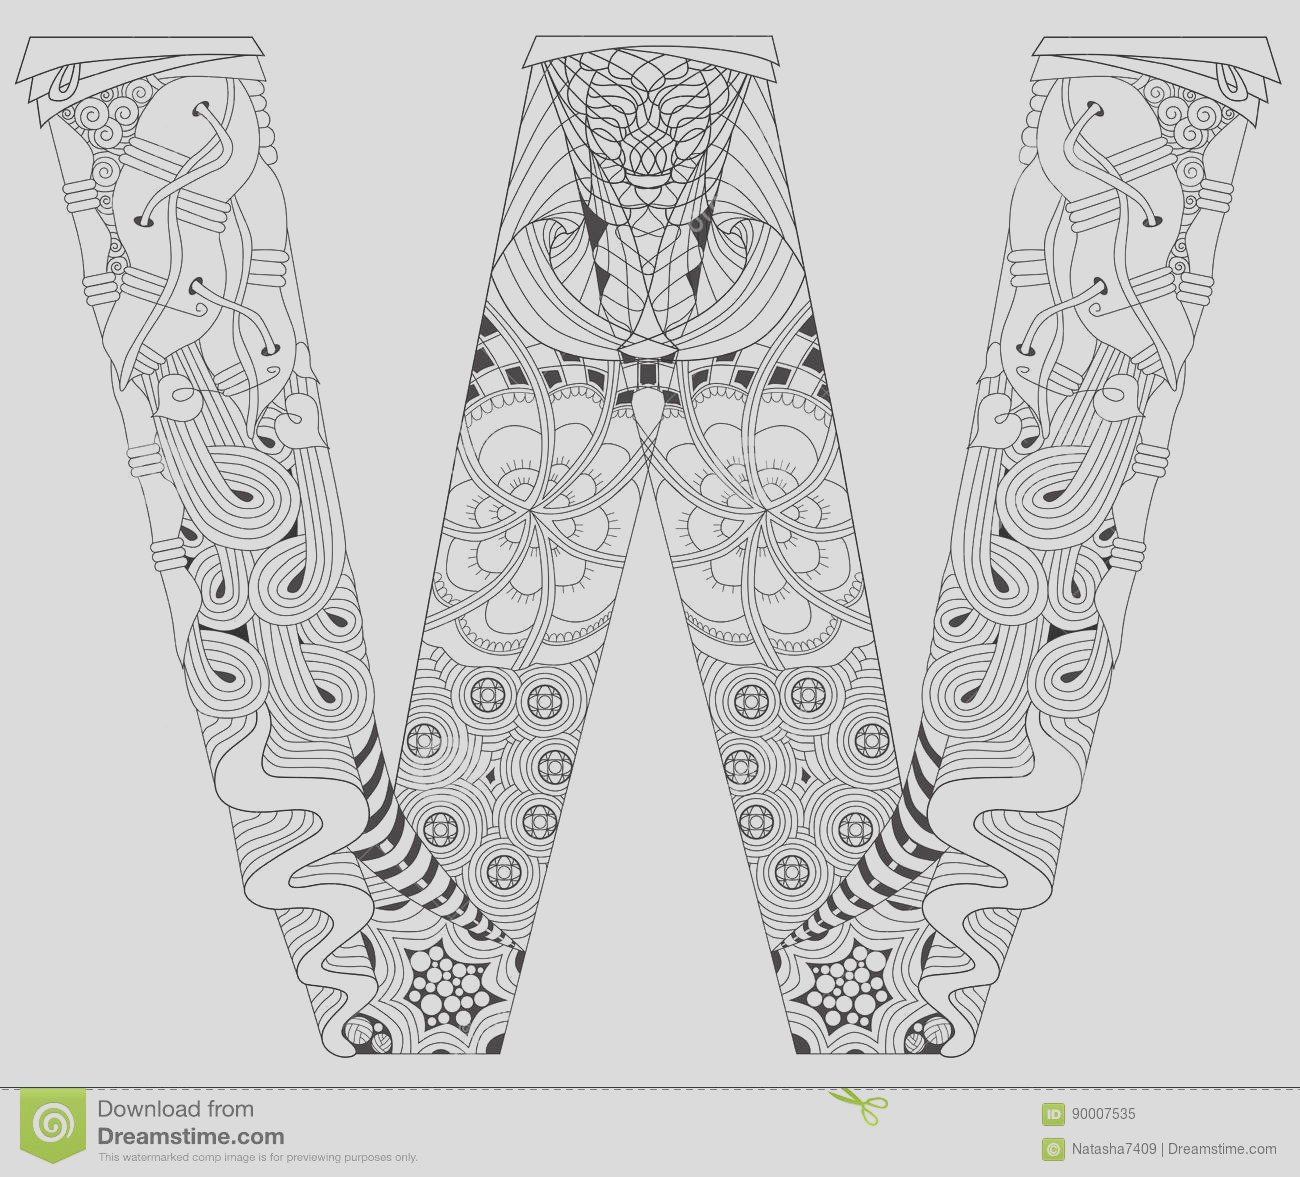 stock illustration letter w coloring vector decorative zentangle object hand painted art design adult anti stress page black white hand drawn image